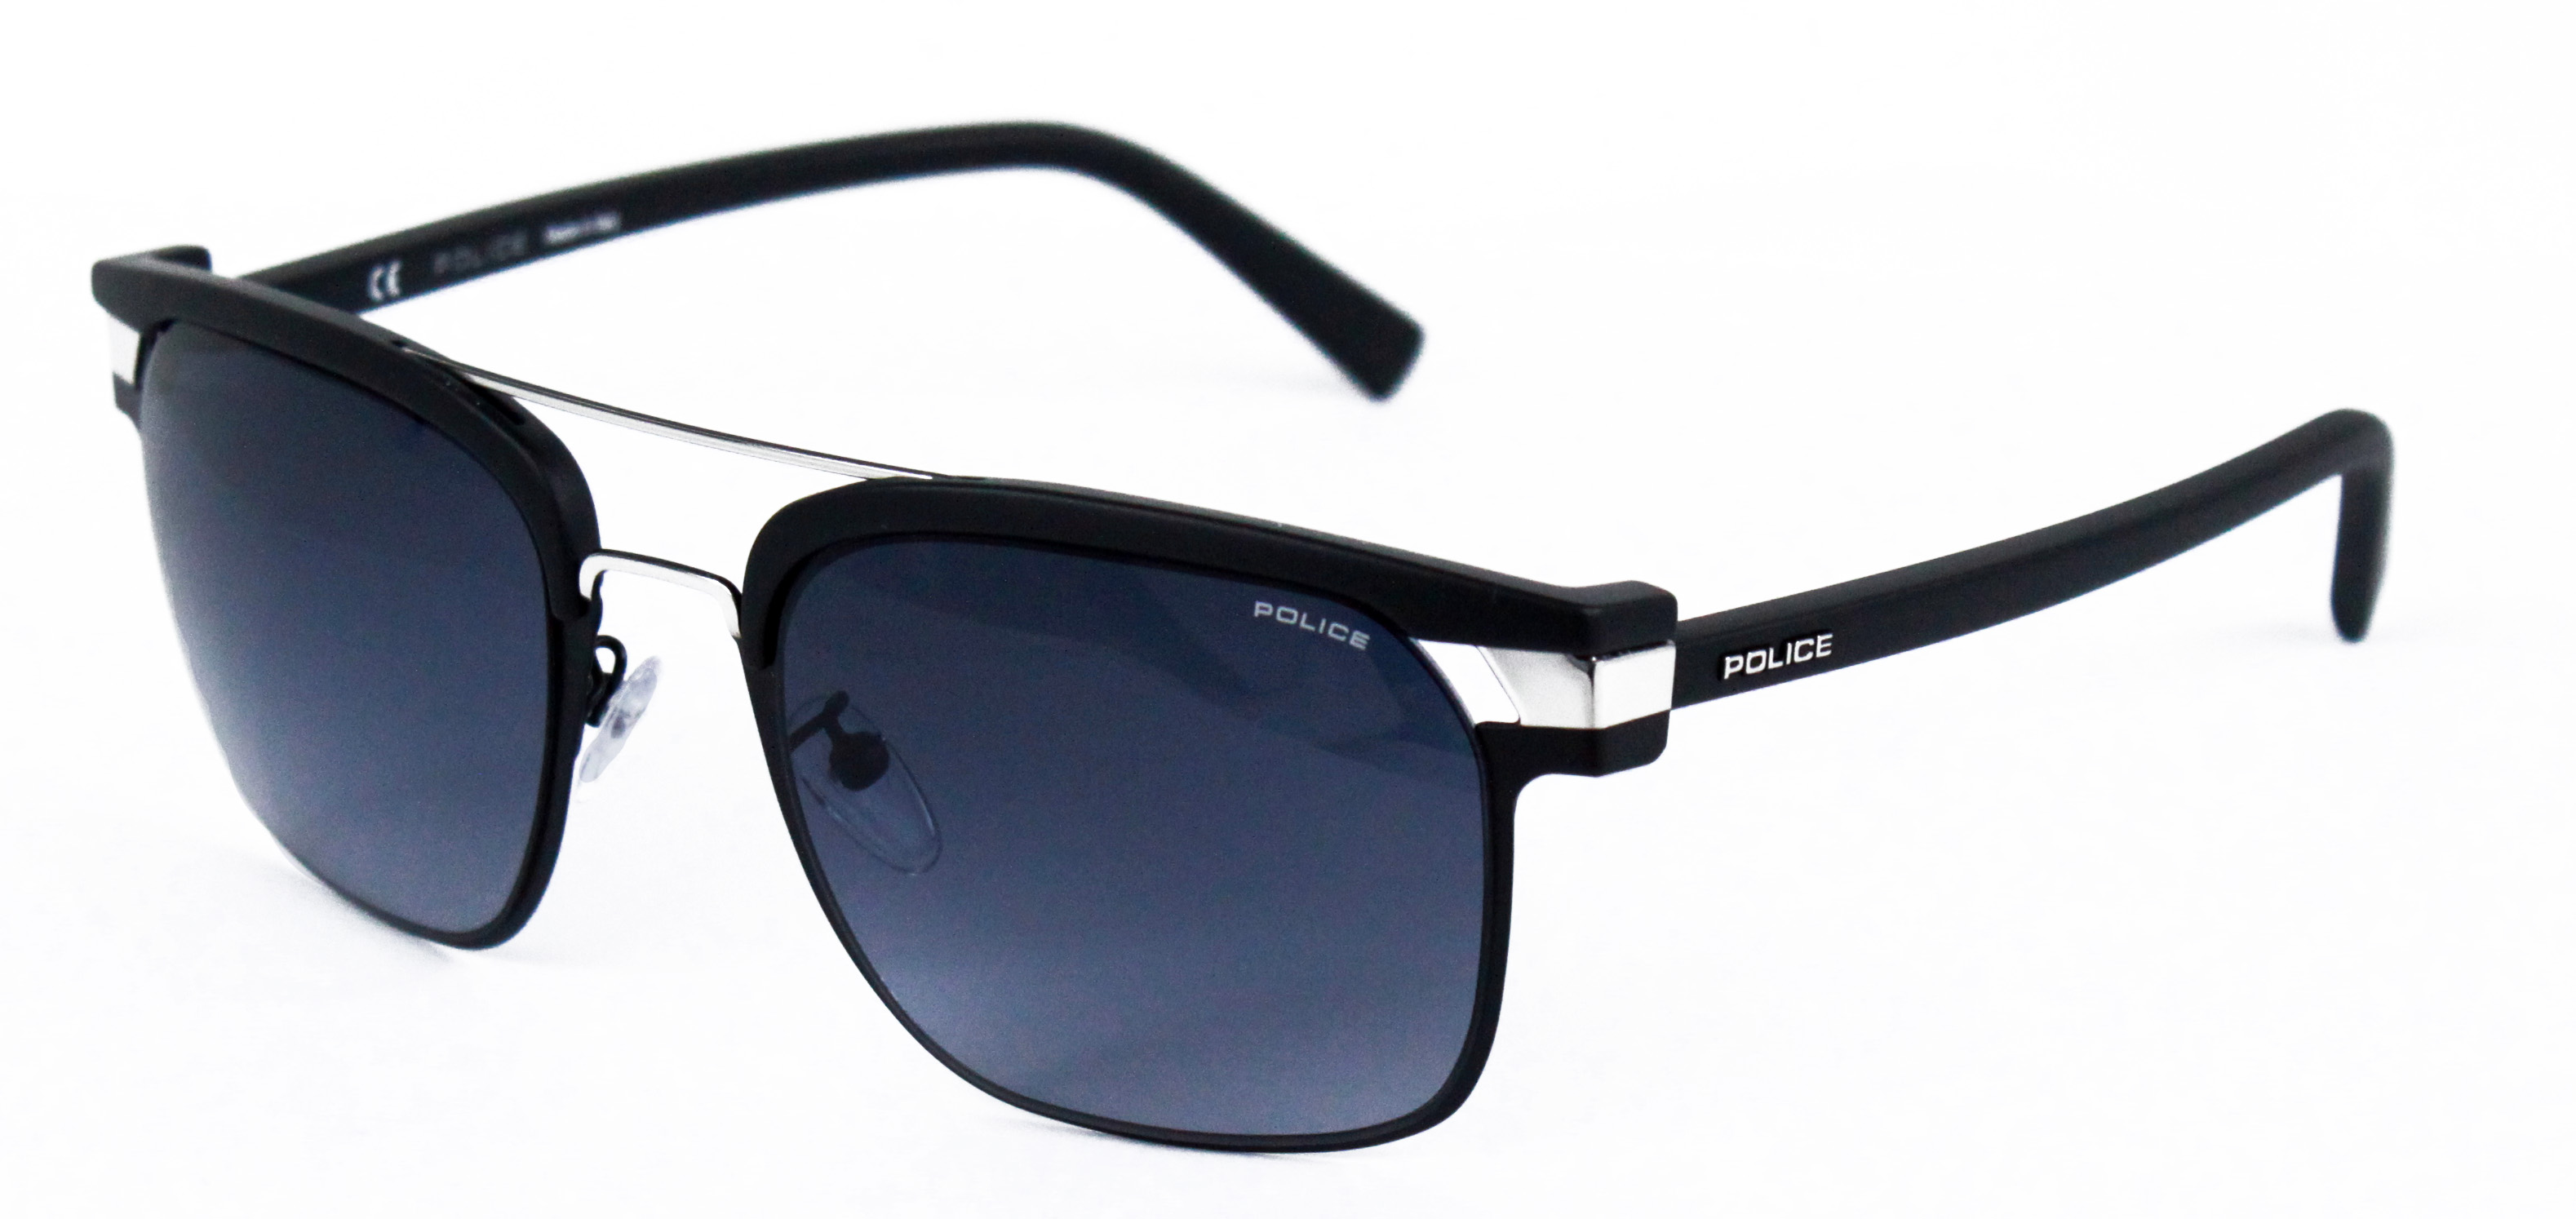 Details about Police SPL233 0531 Sunglasses 04ea85f005